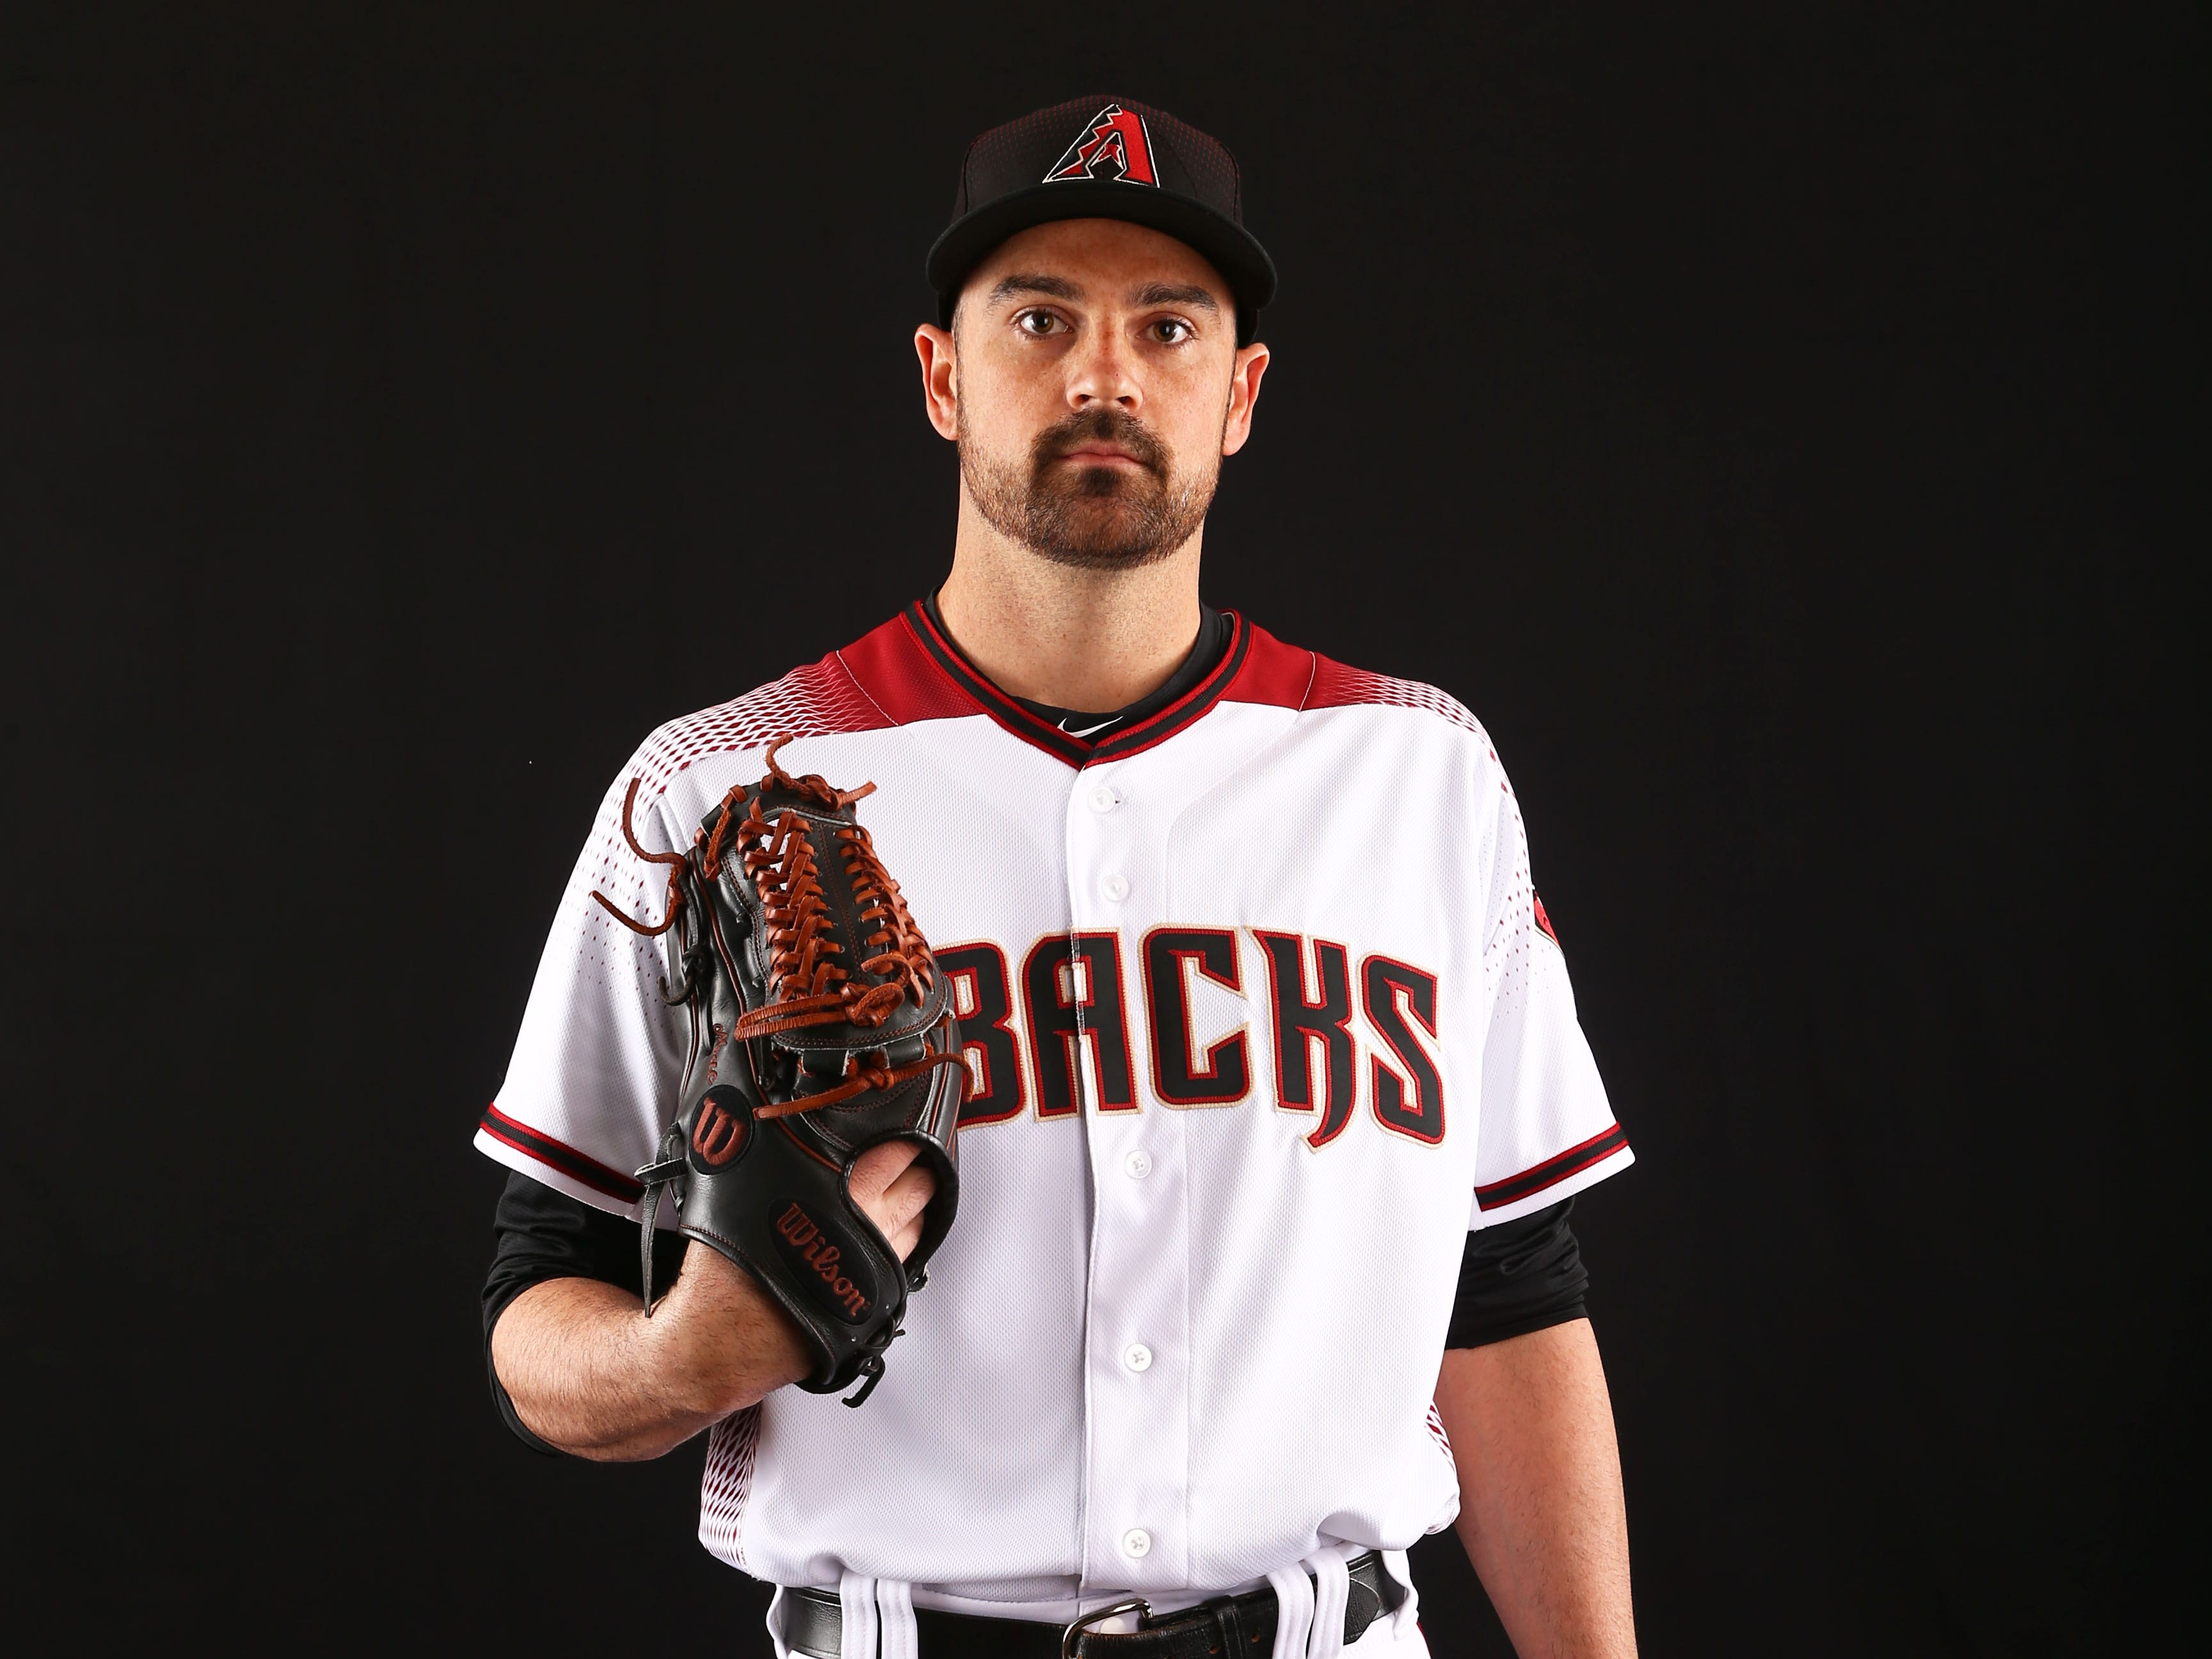 T.J. McFarland of the Arizona Diamondbacks poses for a photo during the annual Spring Training Photo Day on Feb. 20 at Salt River Fields in Scottsdale, Ariz.